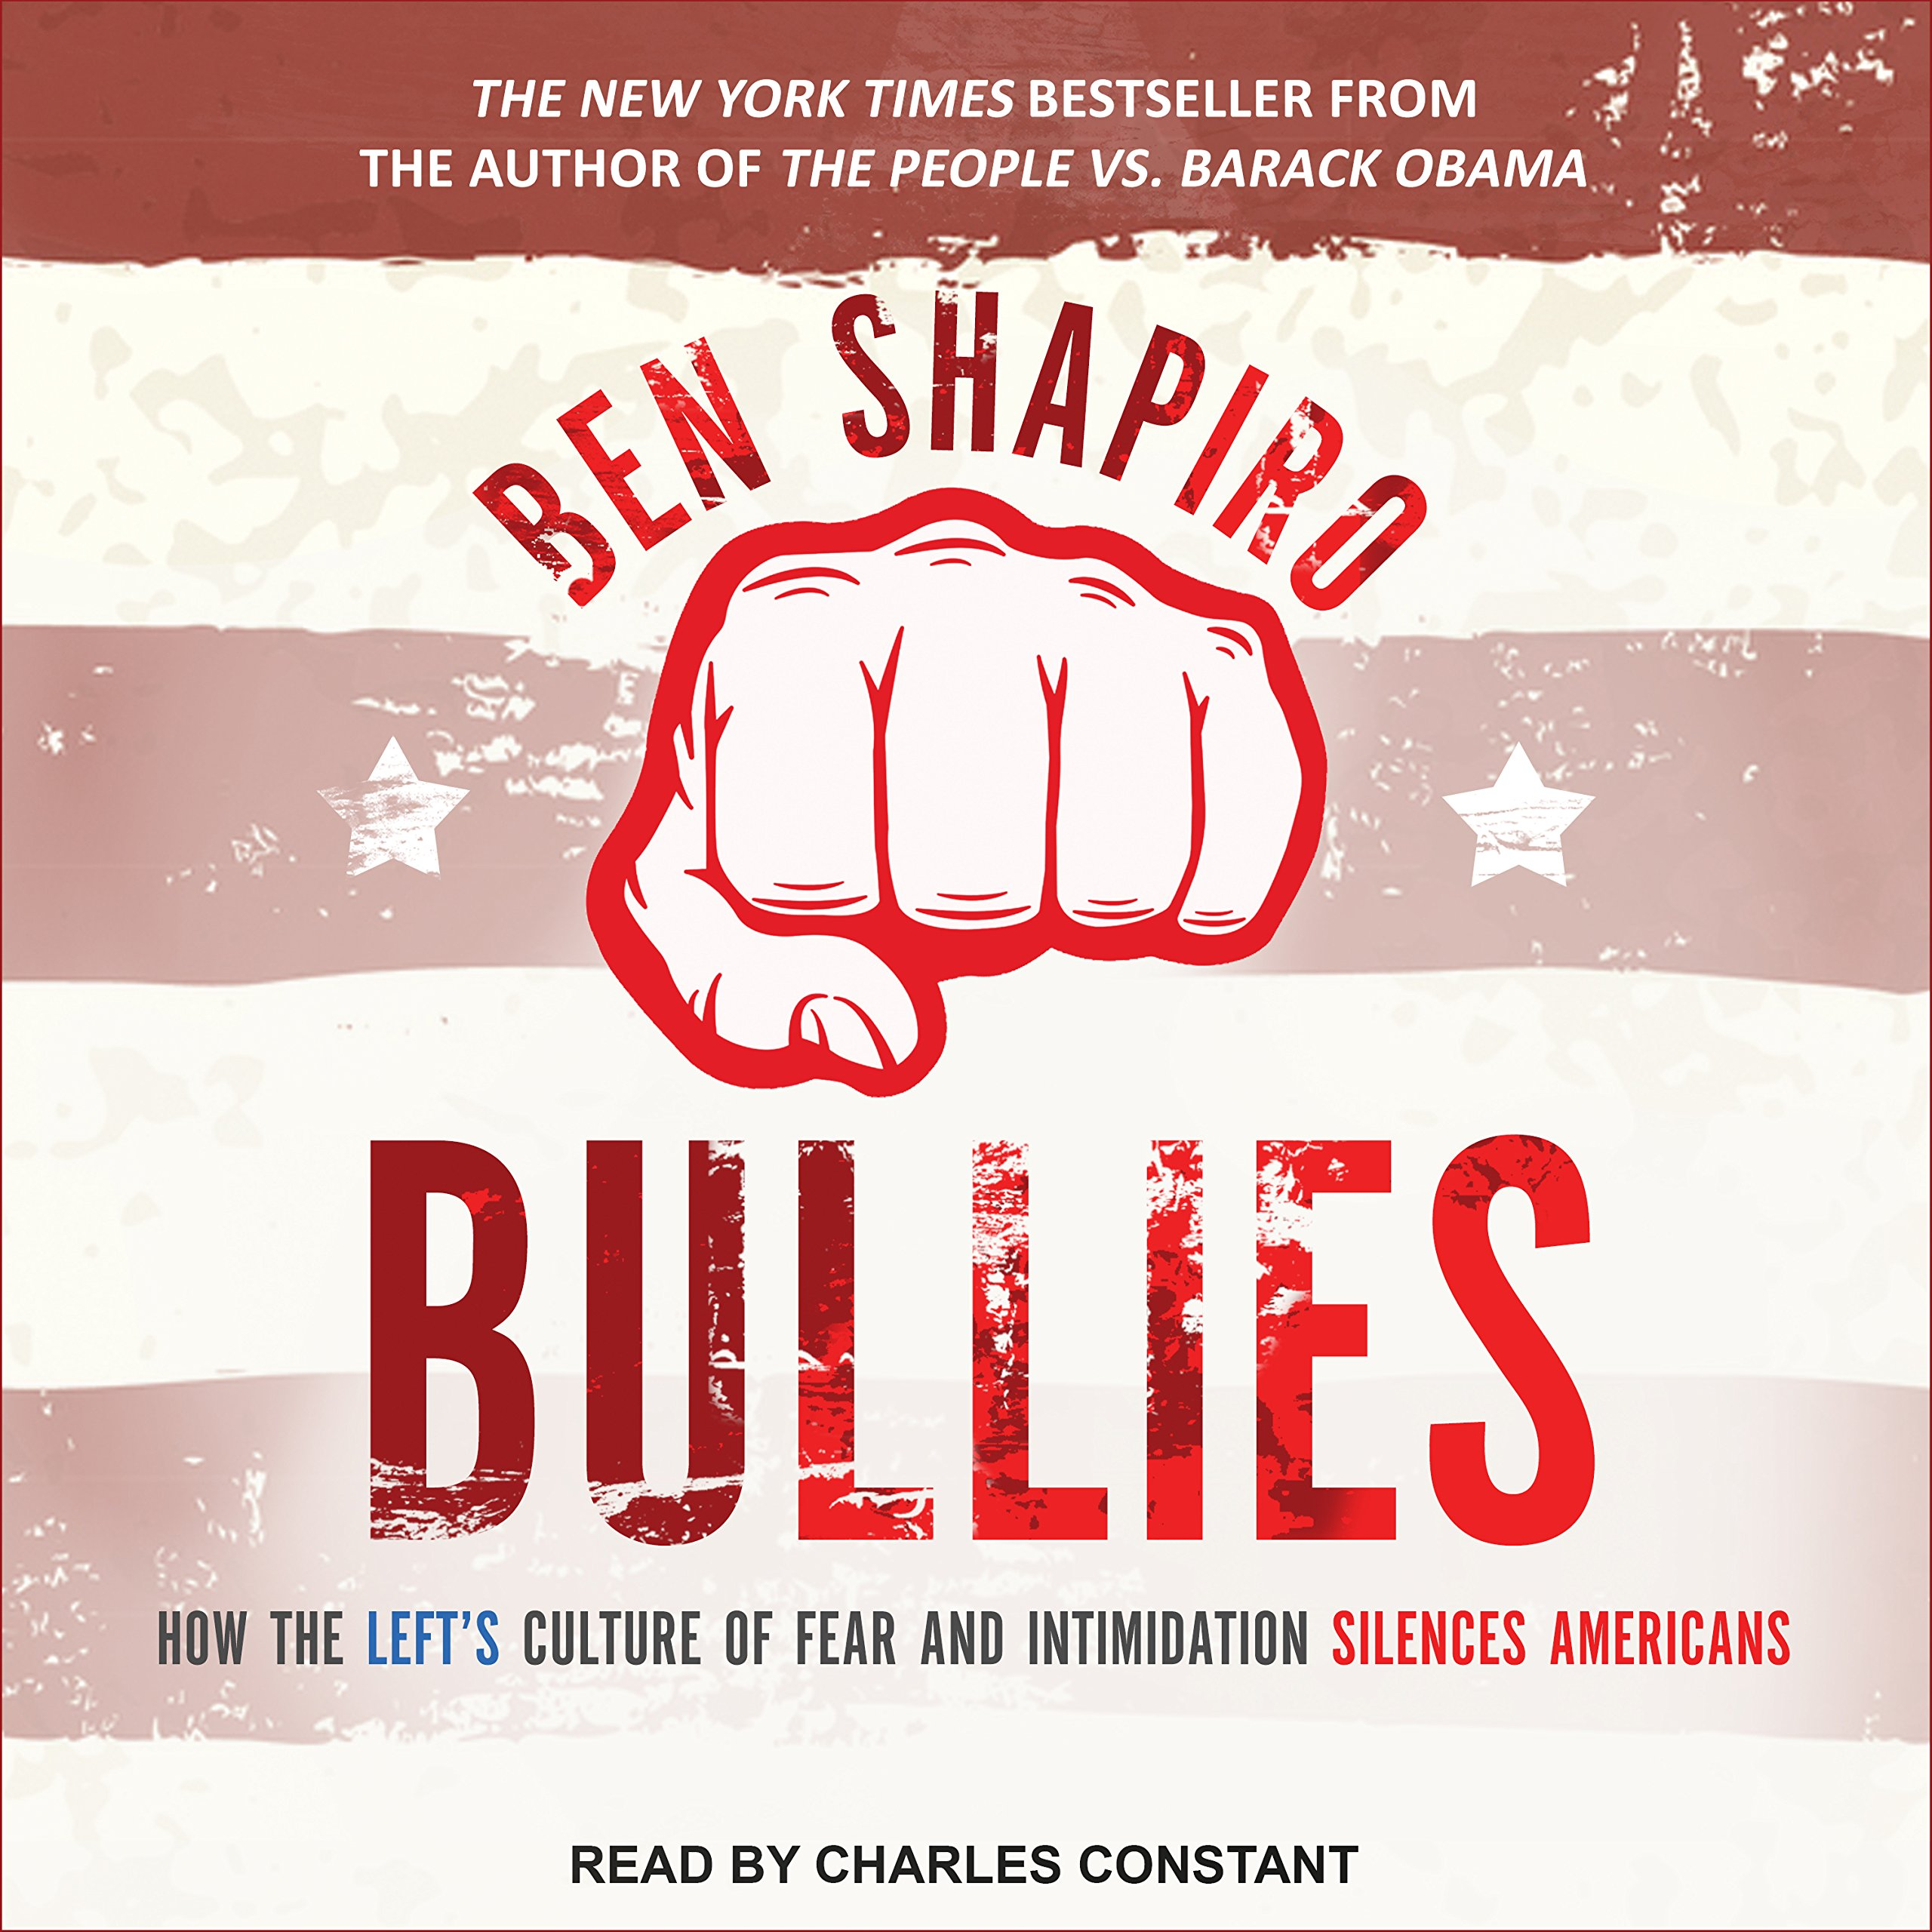 Bullies: How the Left's Culture of Fear and Intimidation Silences Americans by Tantor Audio